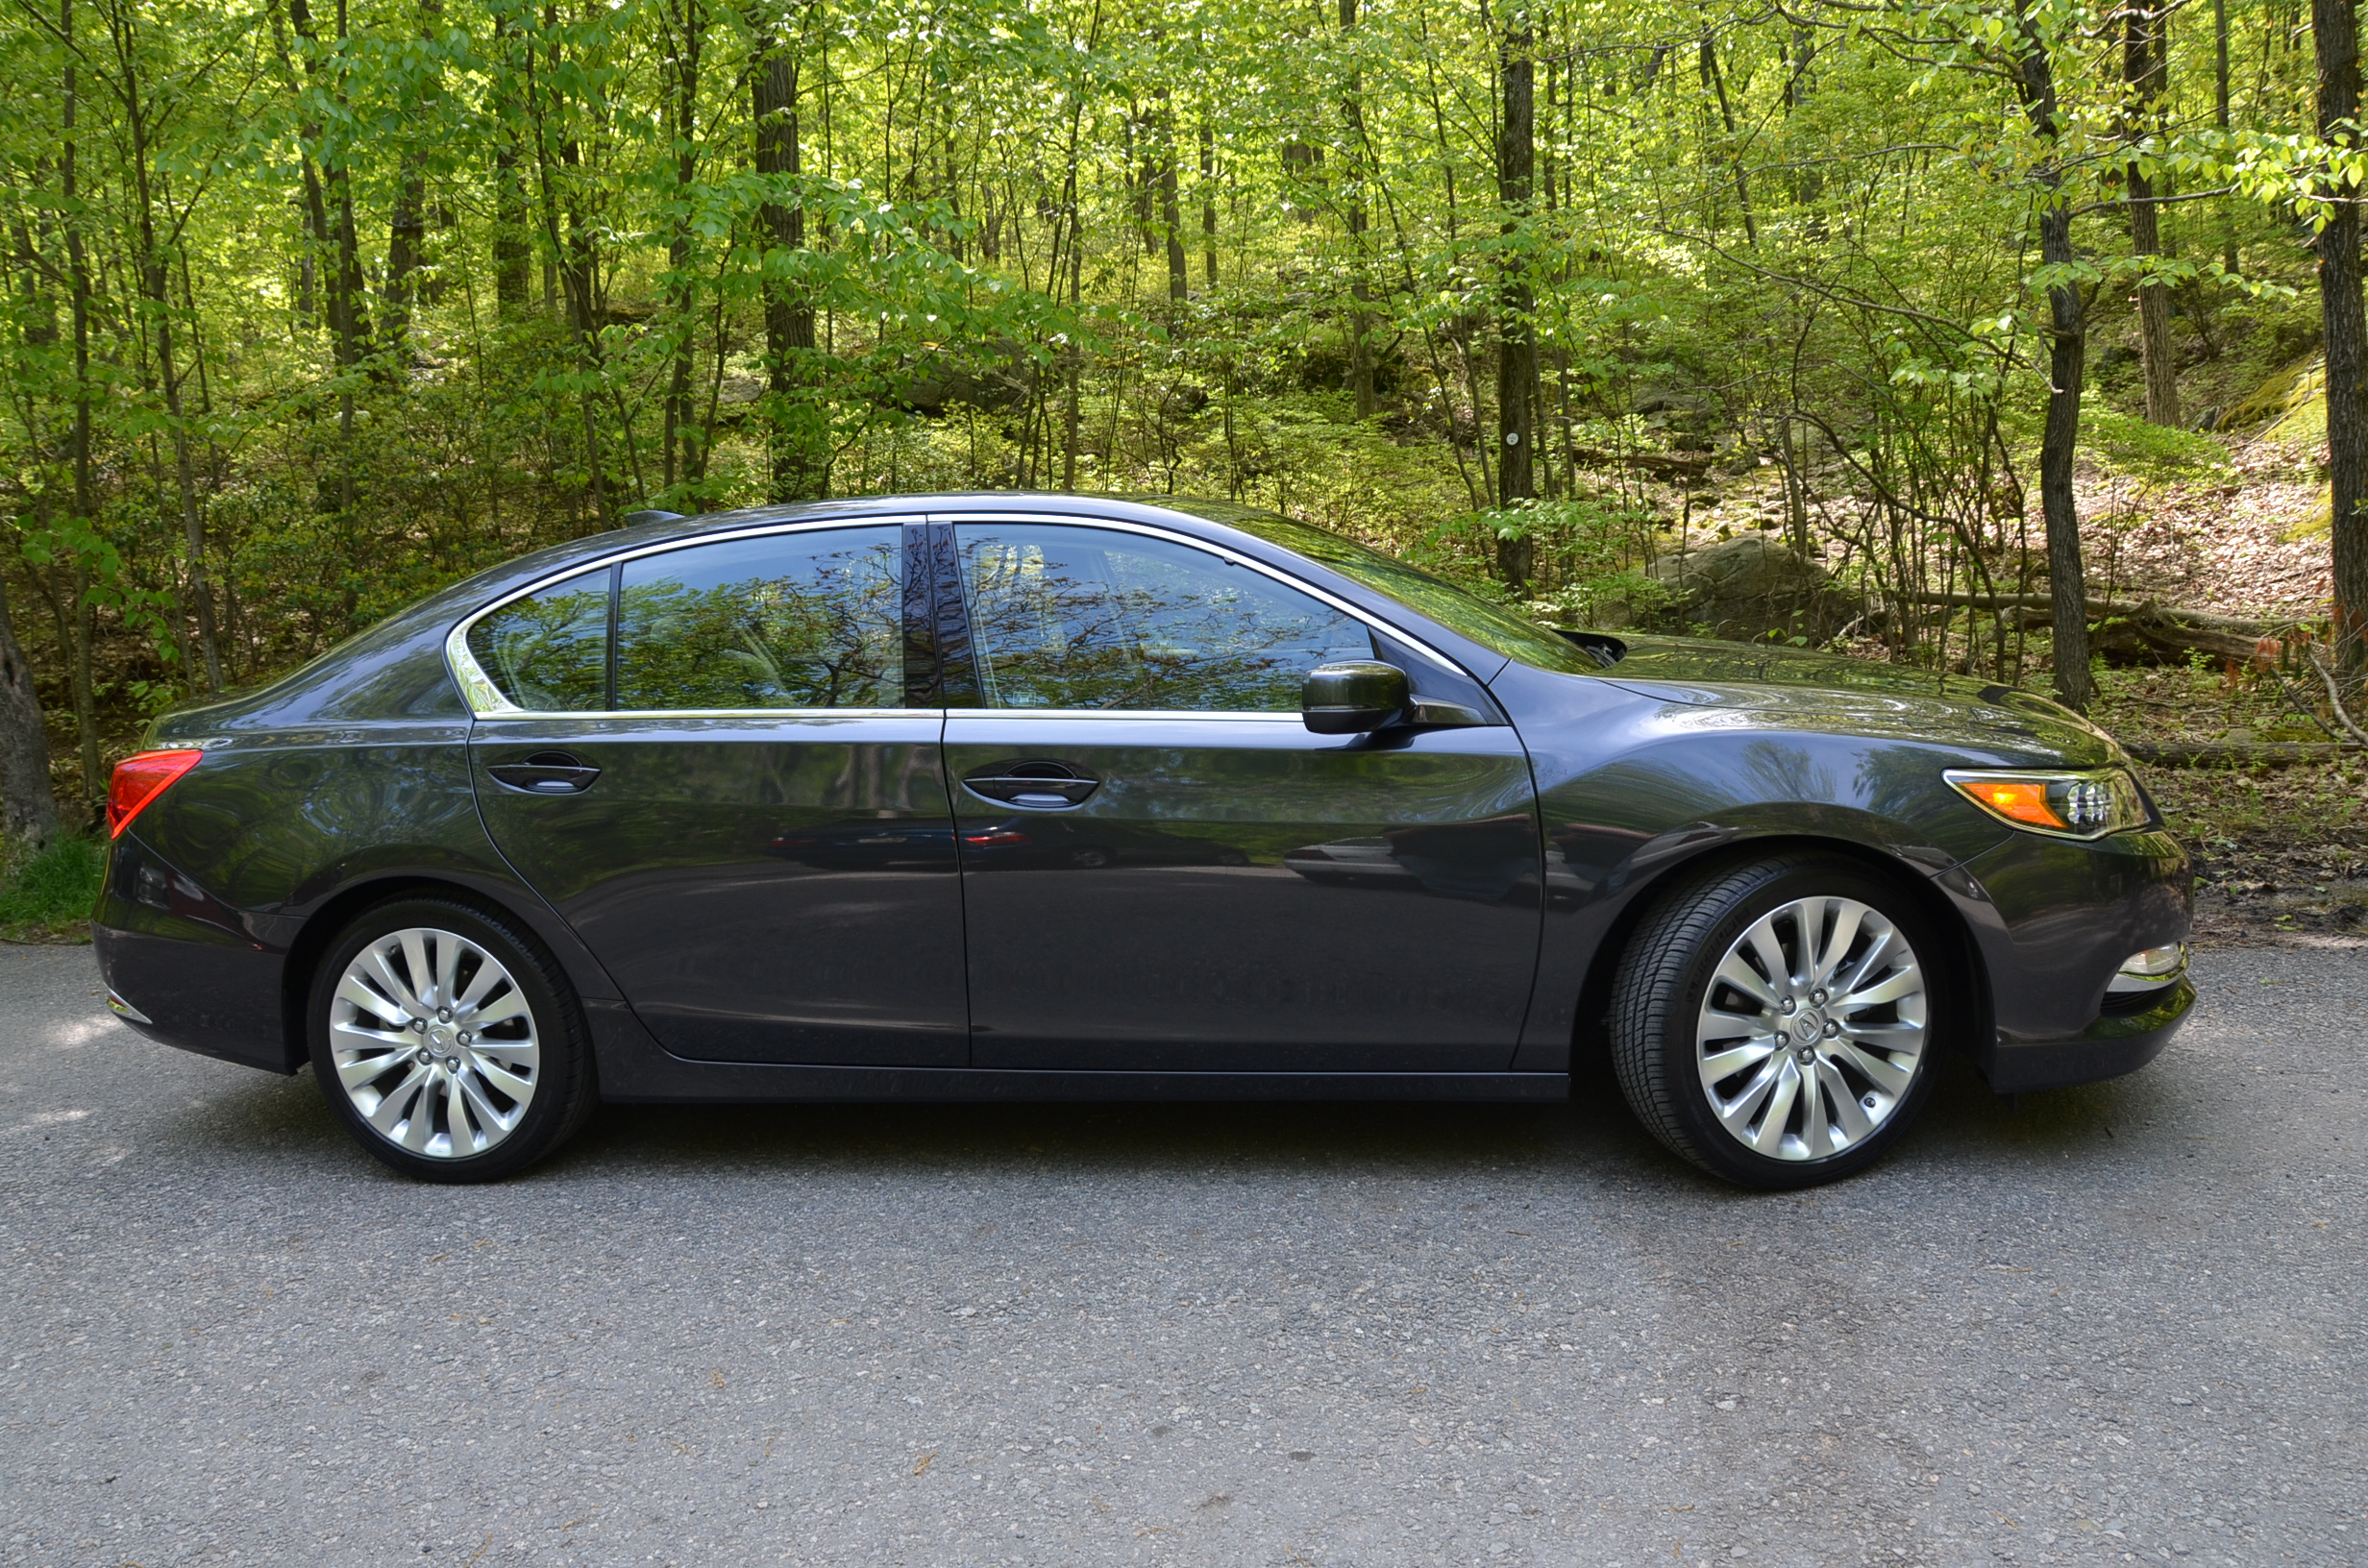 acura rlx review acura rlx car pricing photos and specs. Black Bedroom Furniture Sets. Home Design Ideas